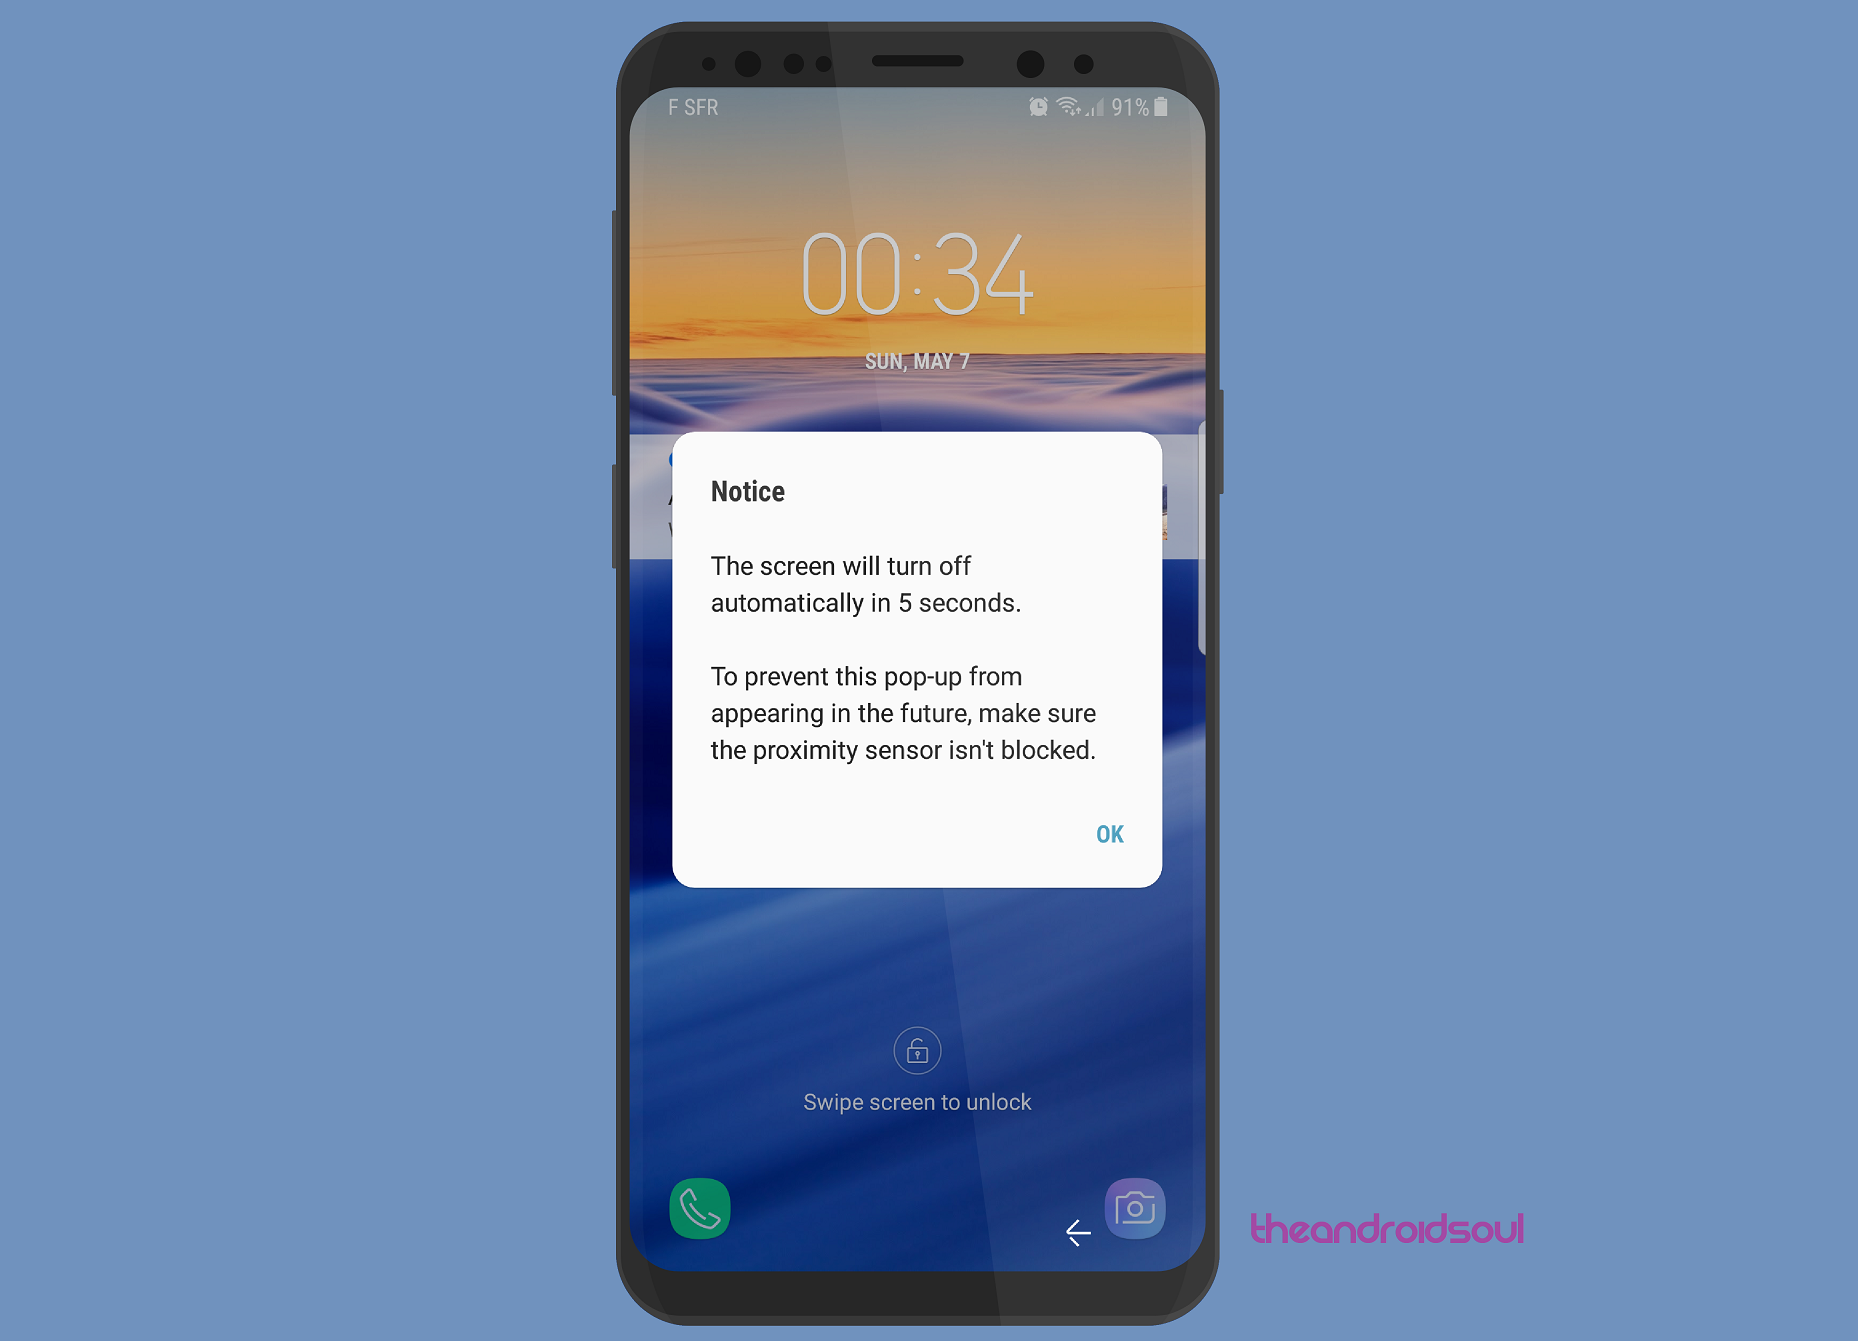 Facing proximity sensor issues on your Galaxy S8? Here's a possible fix